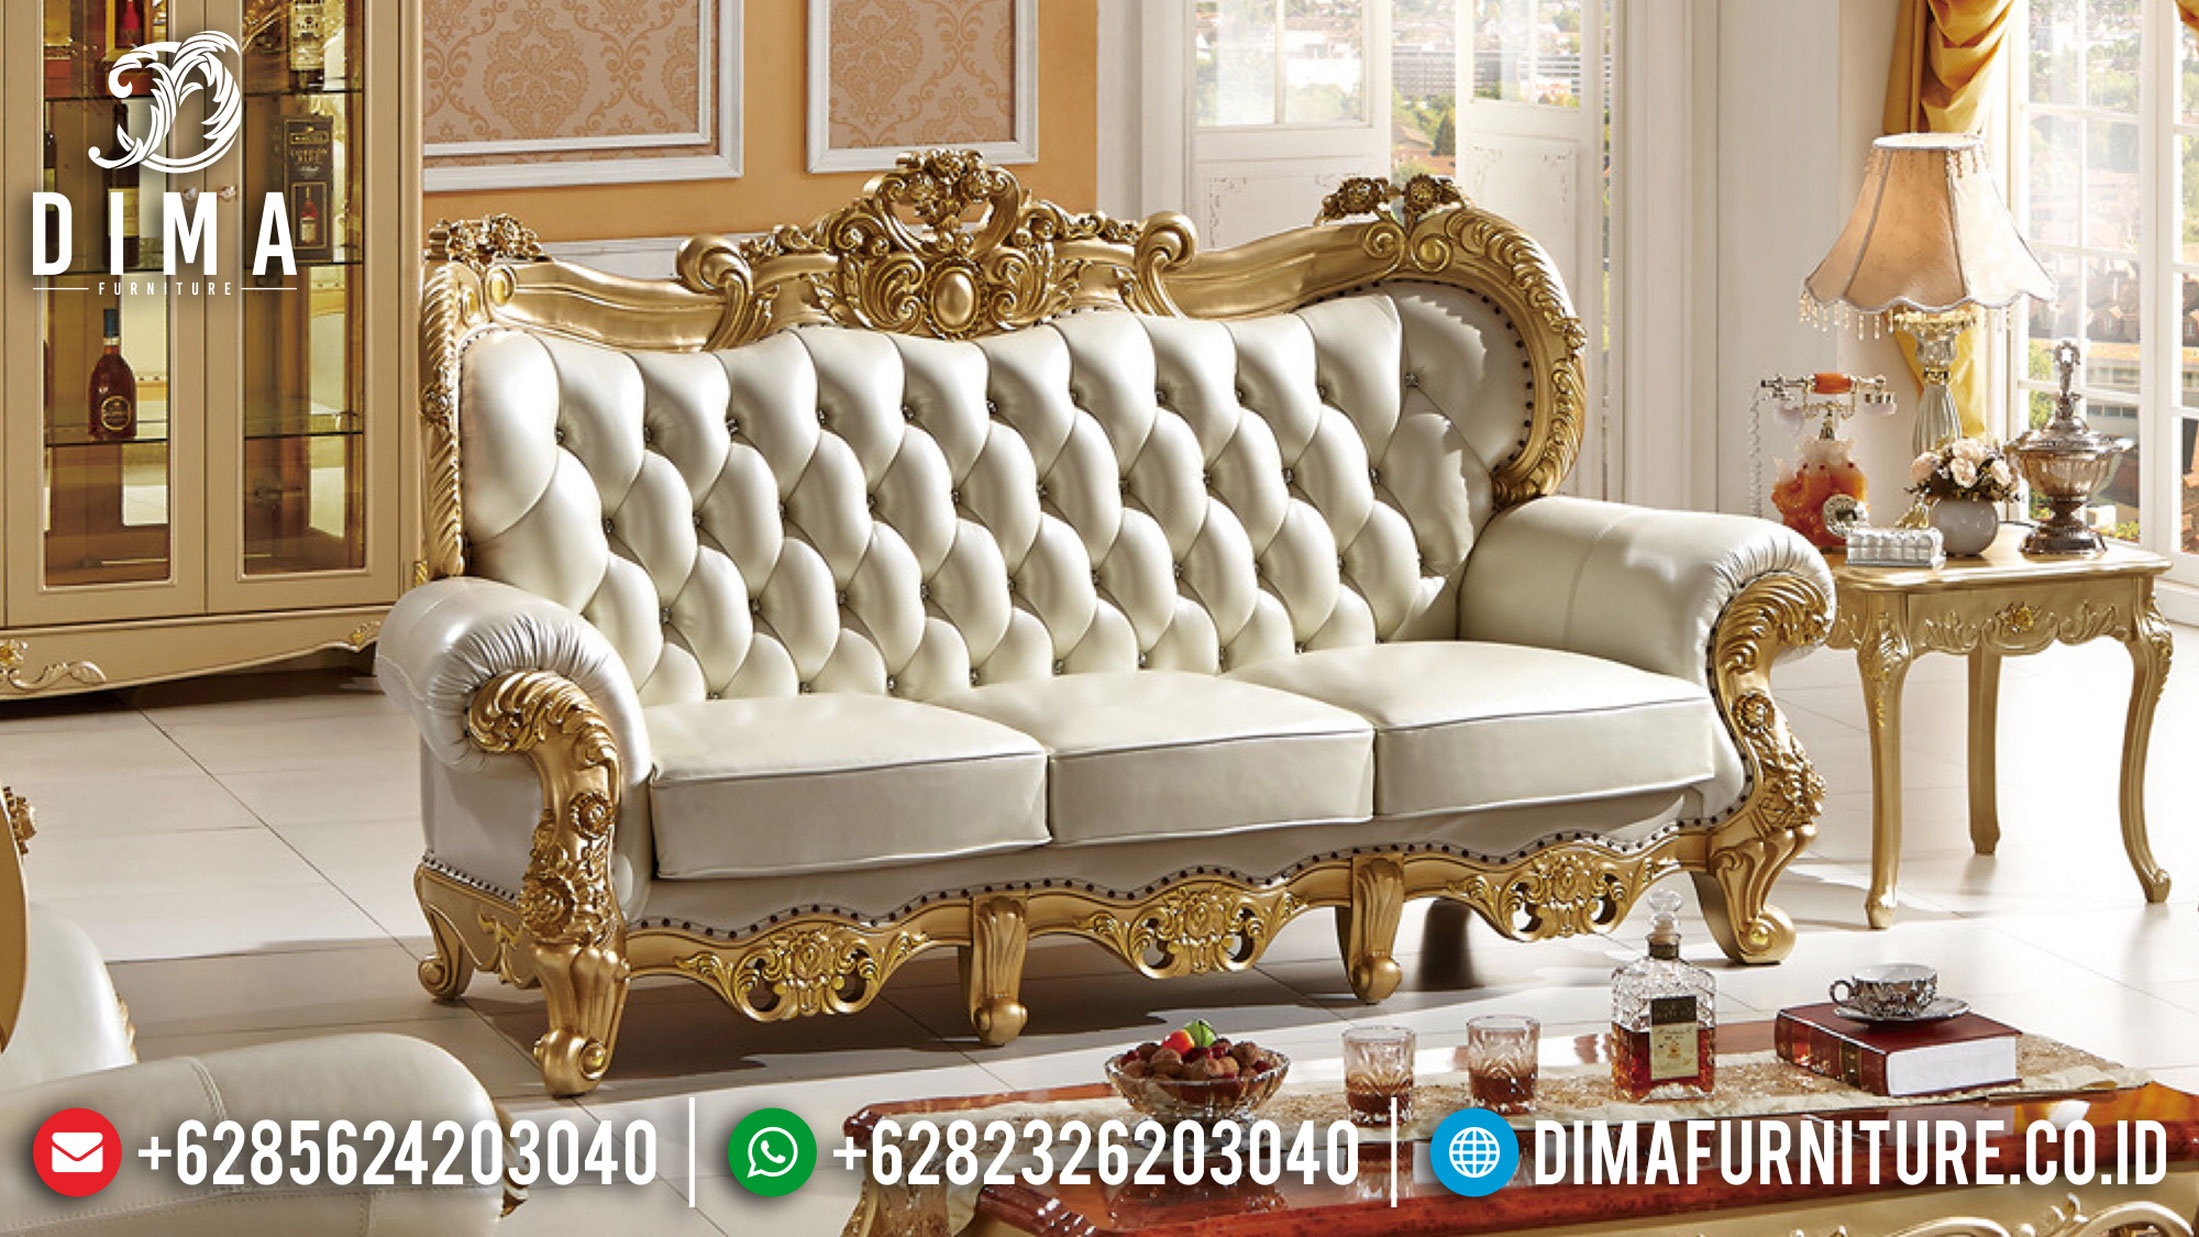 New Model Kursi Sofa Mewah 3 Seat Luxury Carving Italian Empire Style TTJ-1044